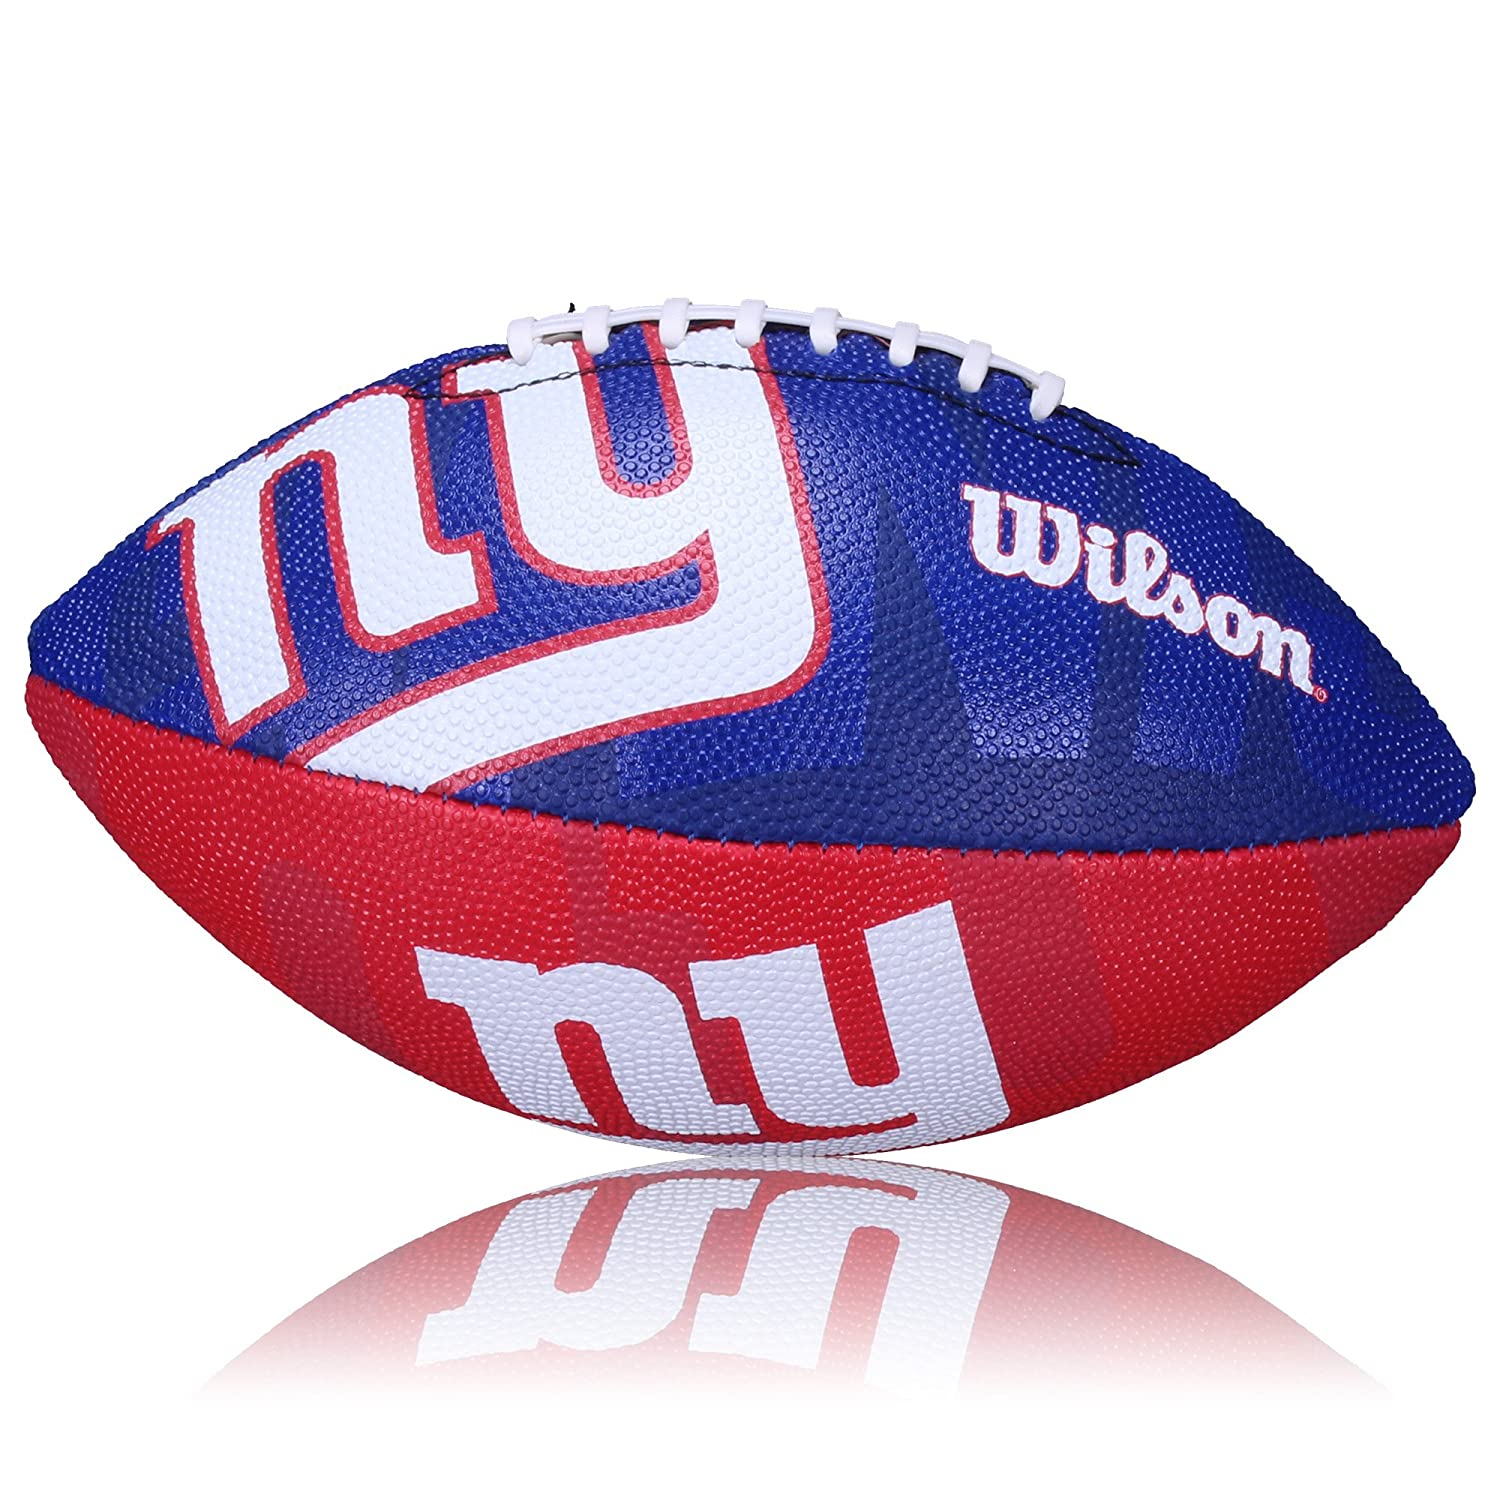 Wilson Football NFL Junior NY Giants Logo Junior - Balón de fútbol americano (infantil, caucho), color rojo, talla Junior WL0206183840